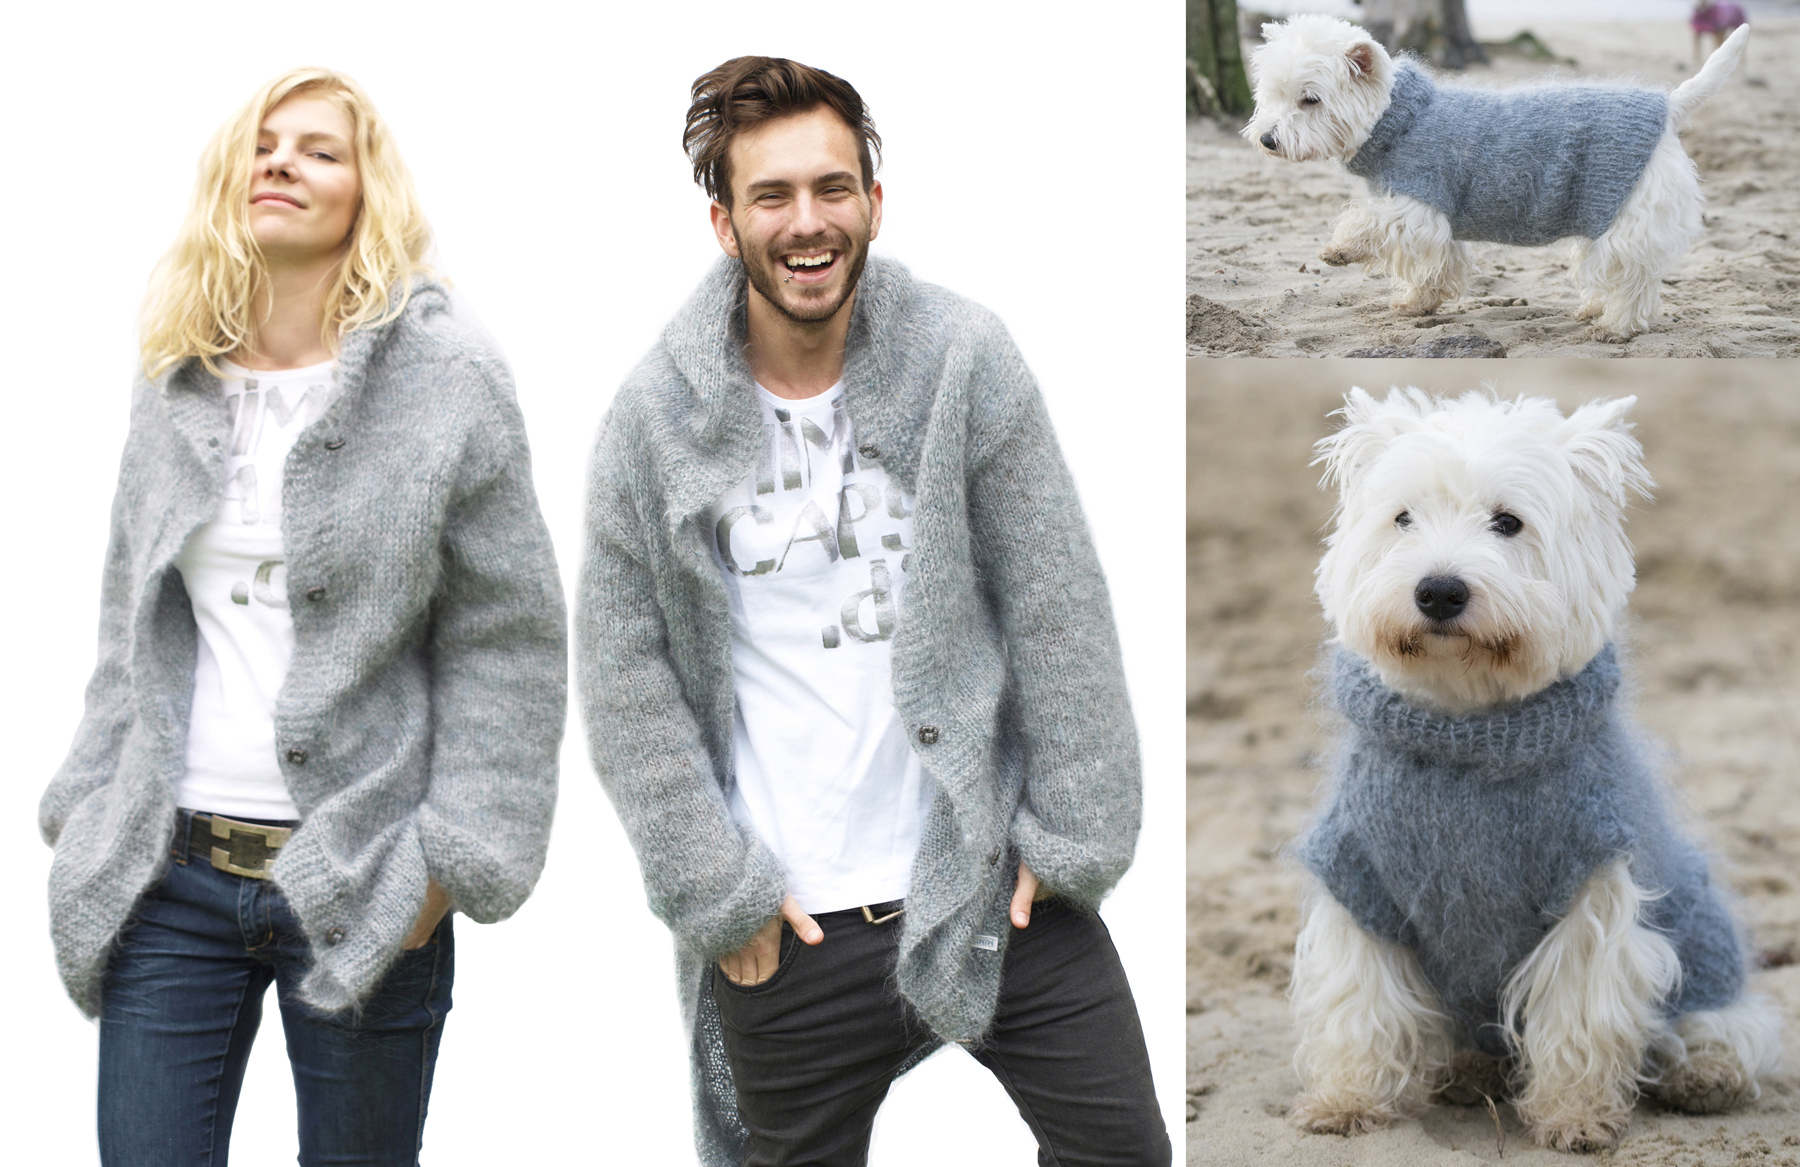 Partnerlook-Hund-Strickjacke-Hundepullover-mohair-kaschmir-mimis-caps-doggies-grau